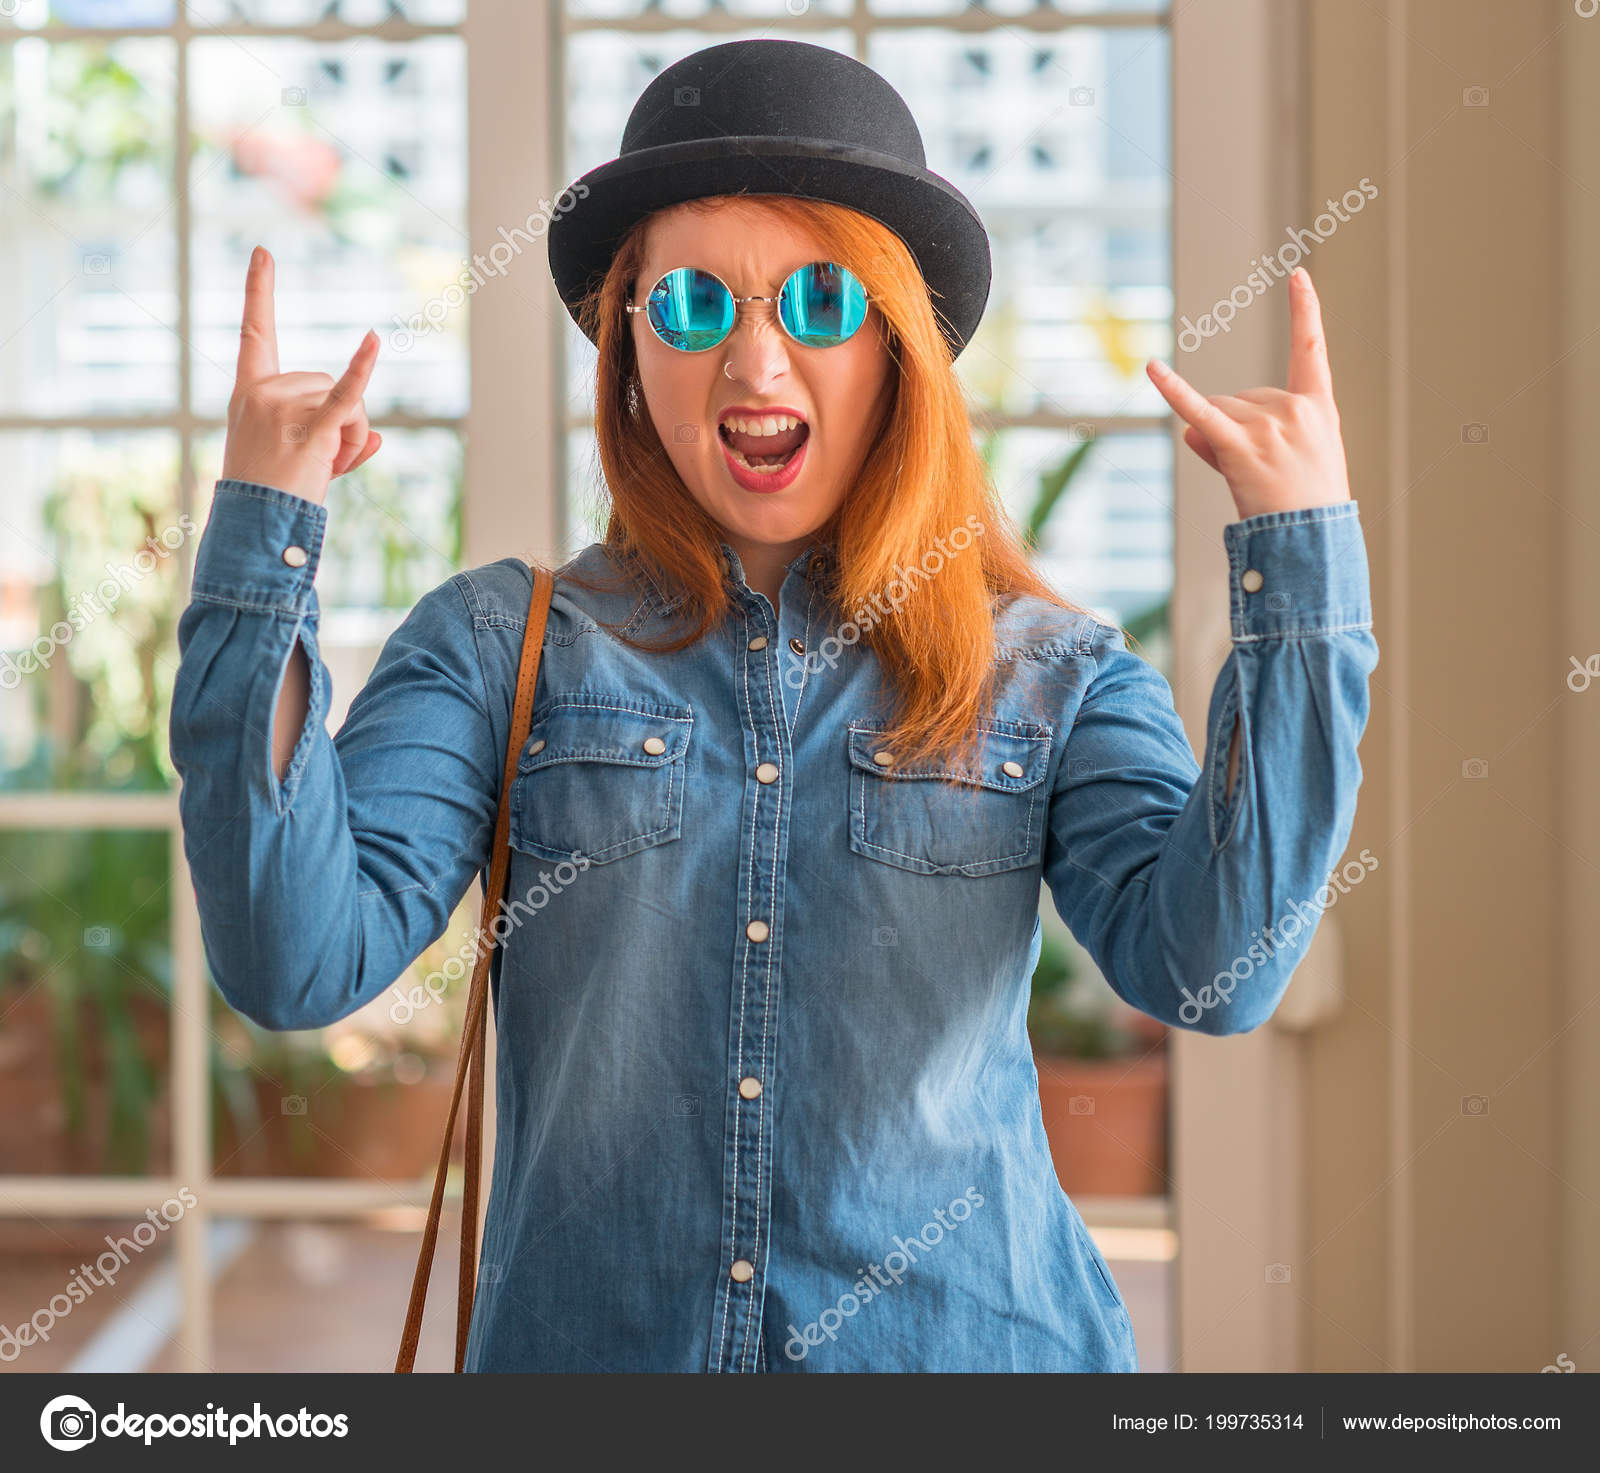 Stylish Redhead Woman Wearing Bowler Hat Sunglasses Shouting Crazy  Expression — Stock Photo 0b902b9ca597